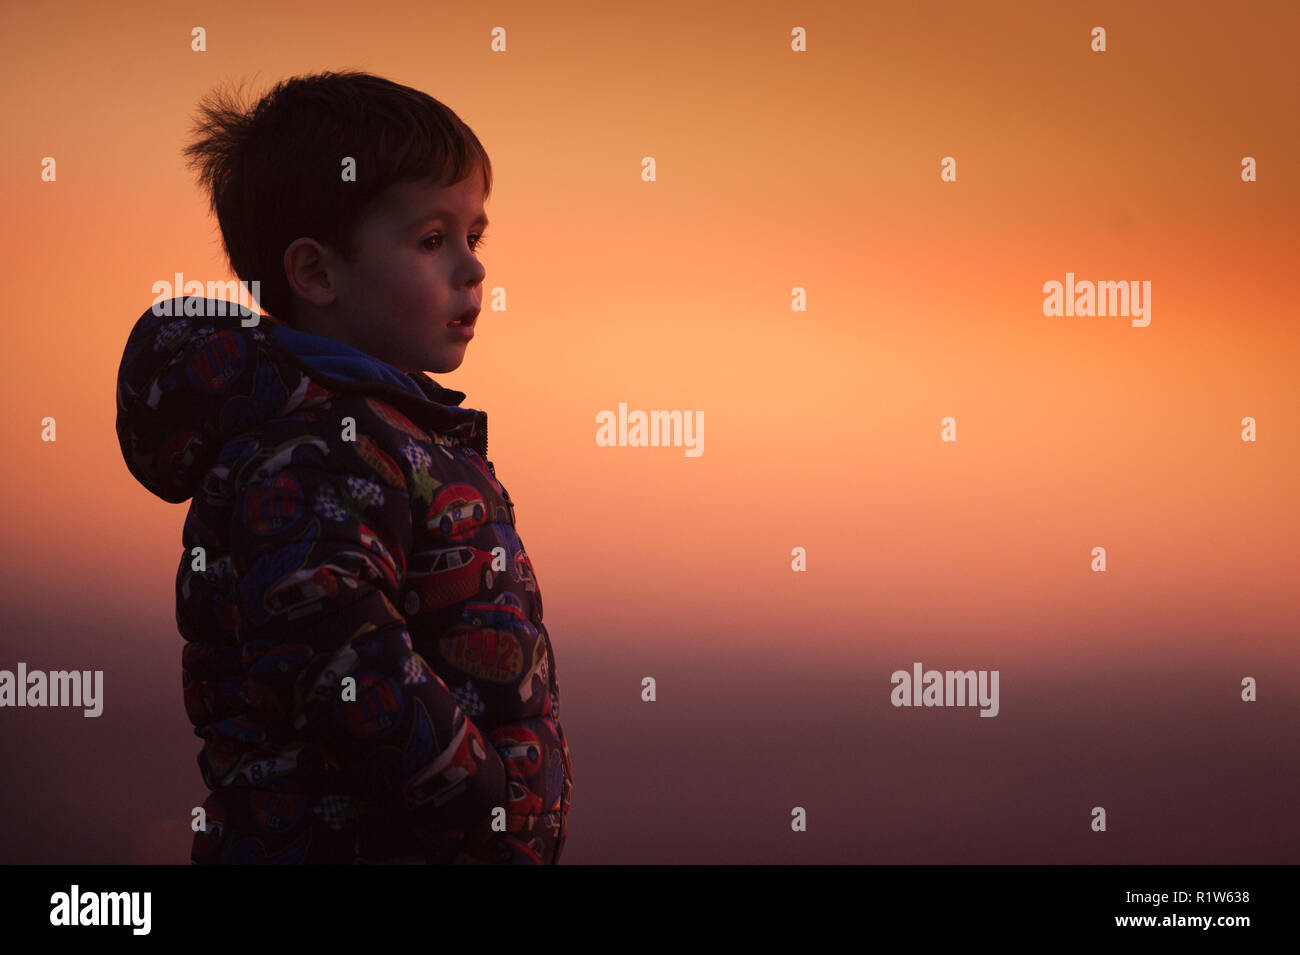 A four year old boy looks out from the top of a hill at sunset taken from the Pennine village of Mossley on Wednesday 14th November 2018. Stock Photo